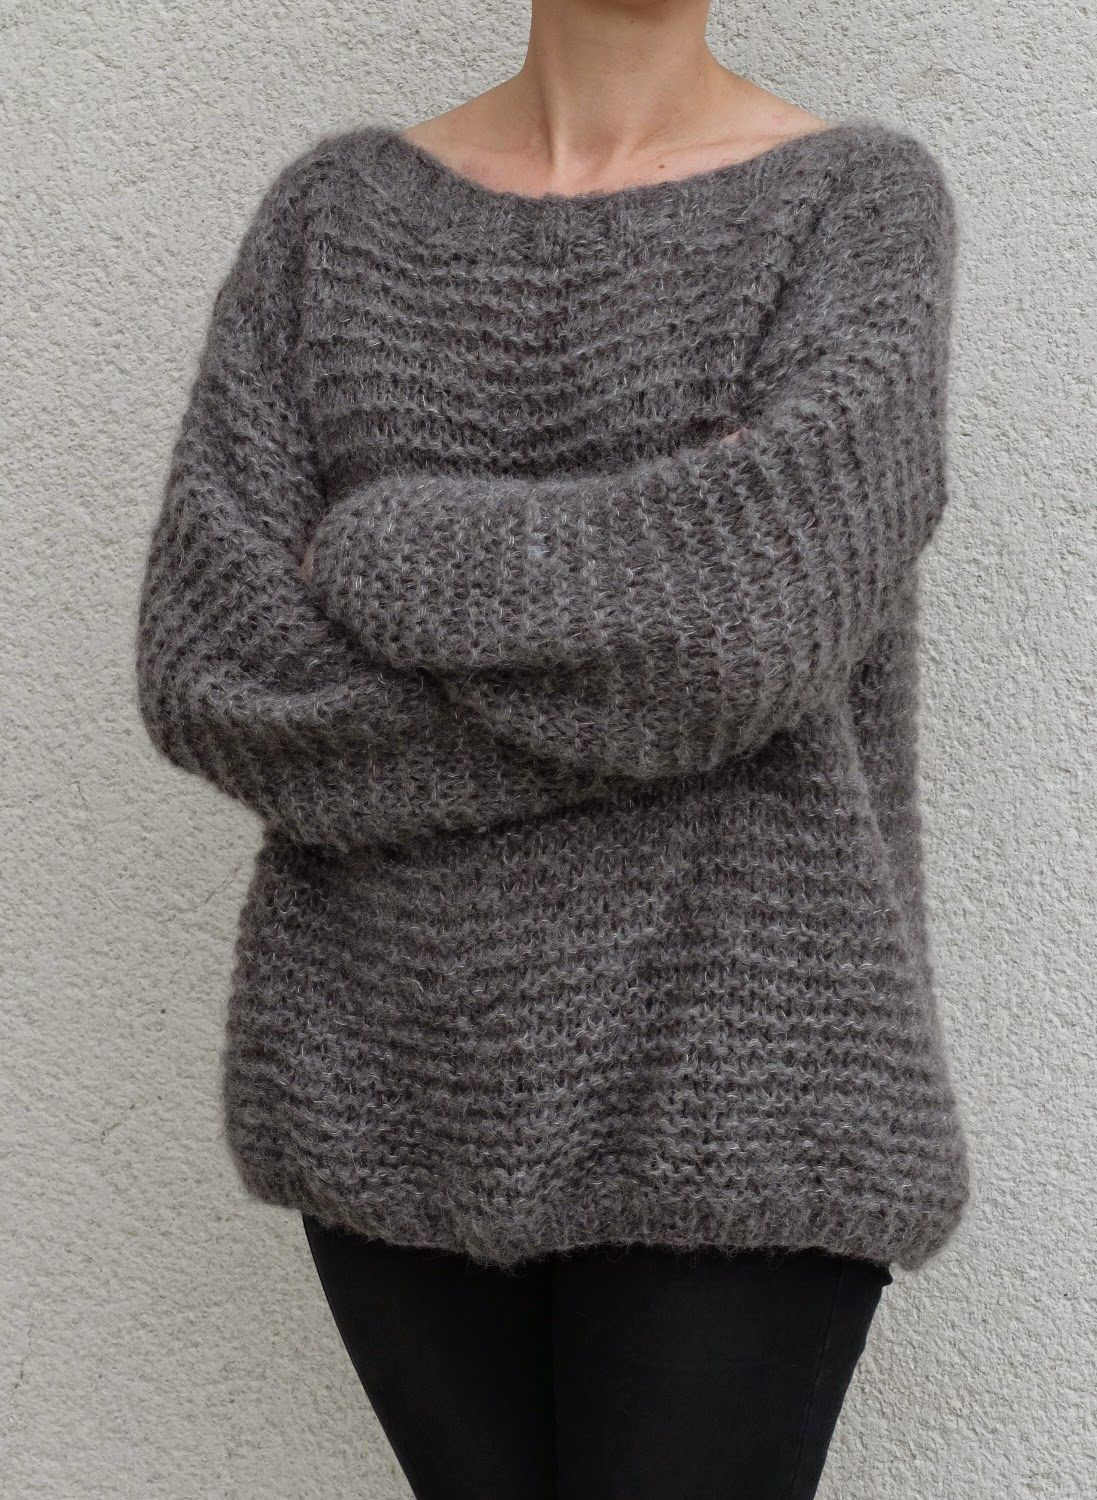 Tricolyne n4 le pull point mousse knit pinterest mousse knit patterns bankloansurffo Gallery